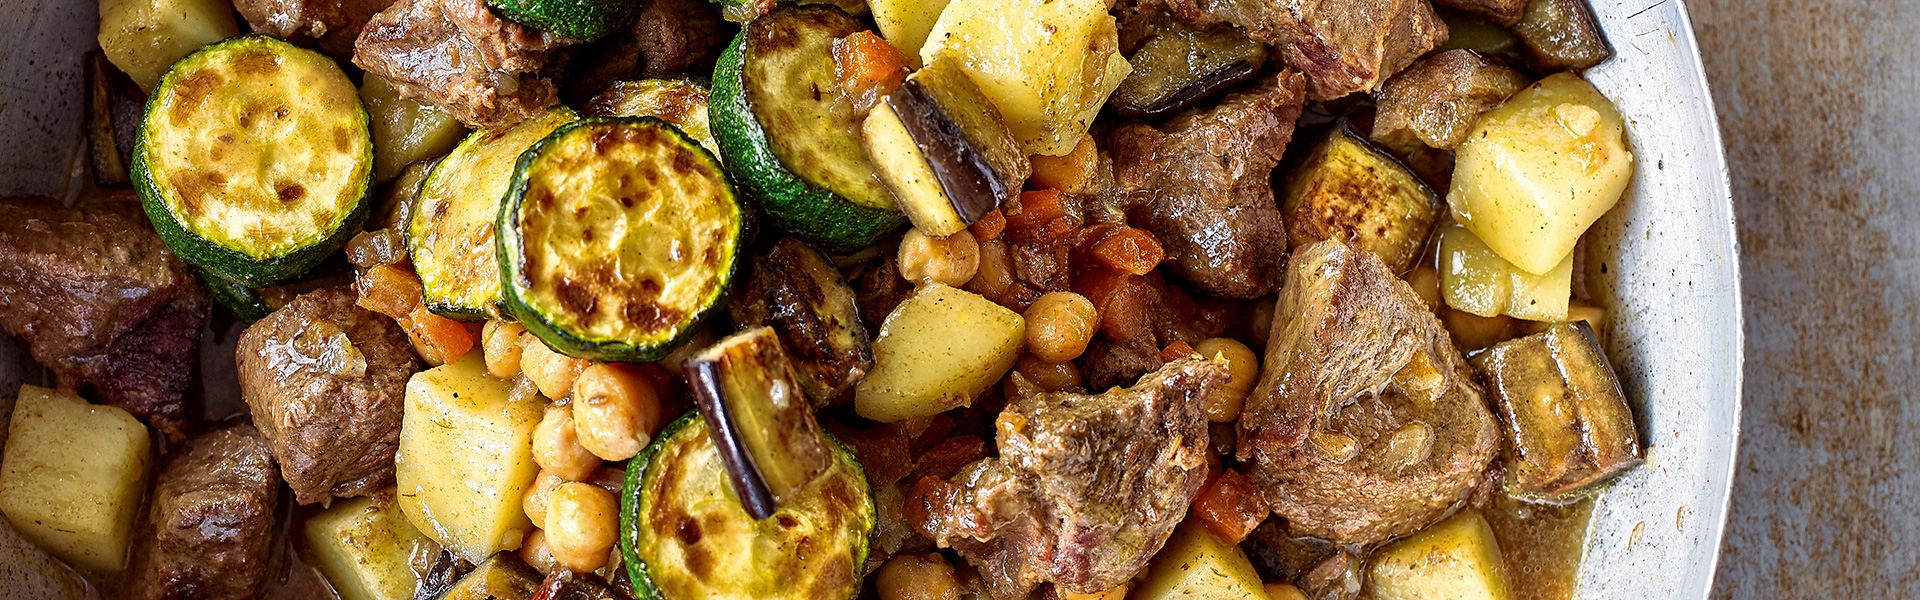 The Big Family Cooking Showdown: Lamb and Vegetable Stew with Couscous Recipe